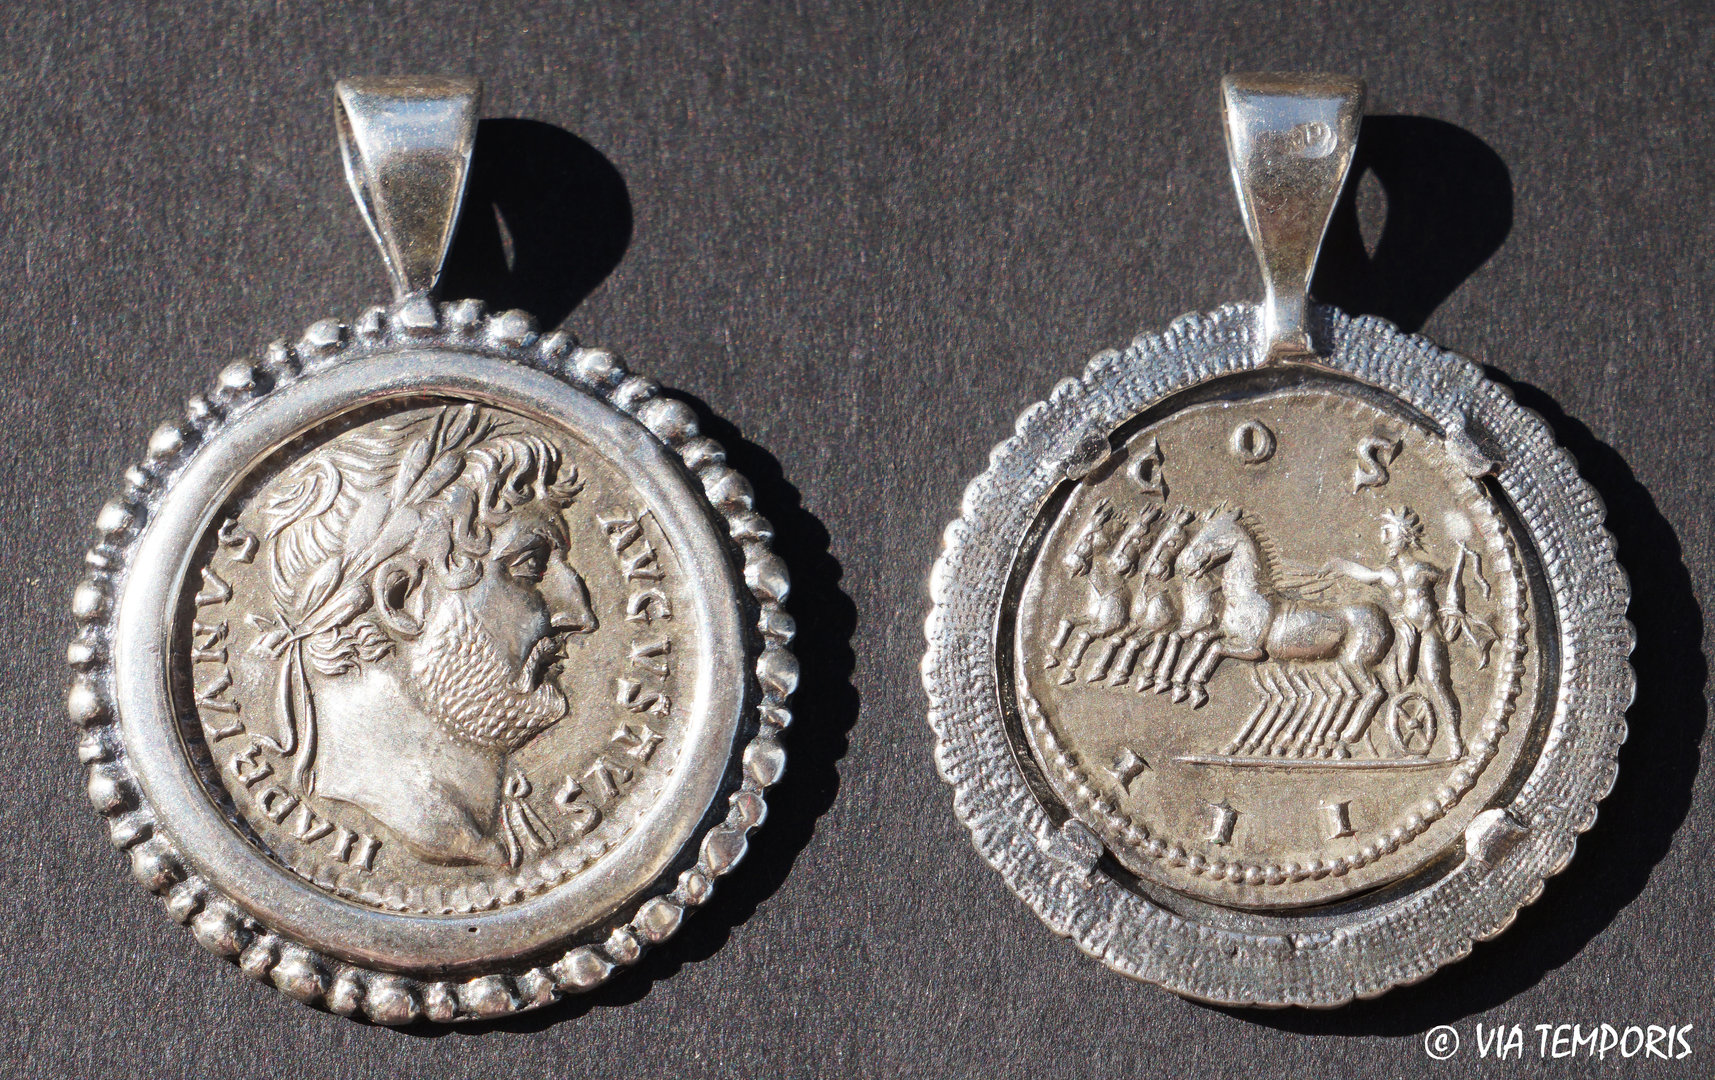 ANCIENT JEWERLY - MEDAL - COIN SILVER WITH EMPEROR HADRIEN